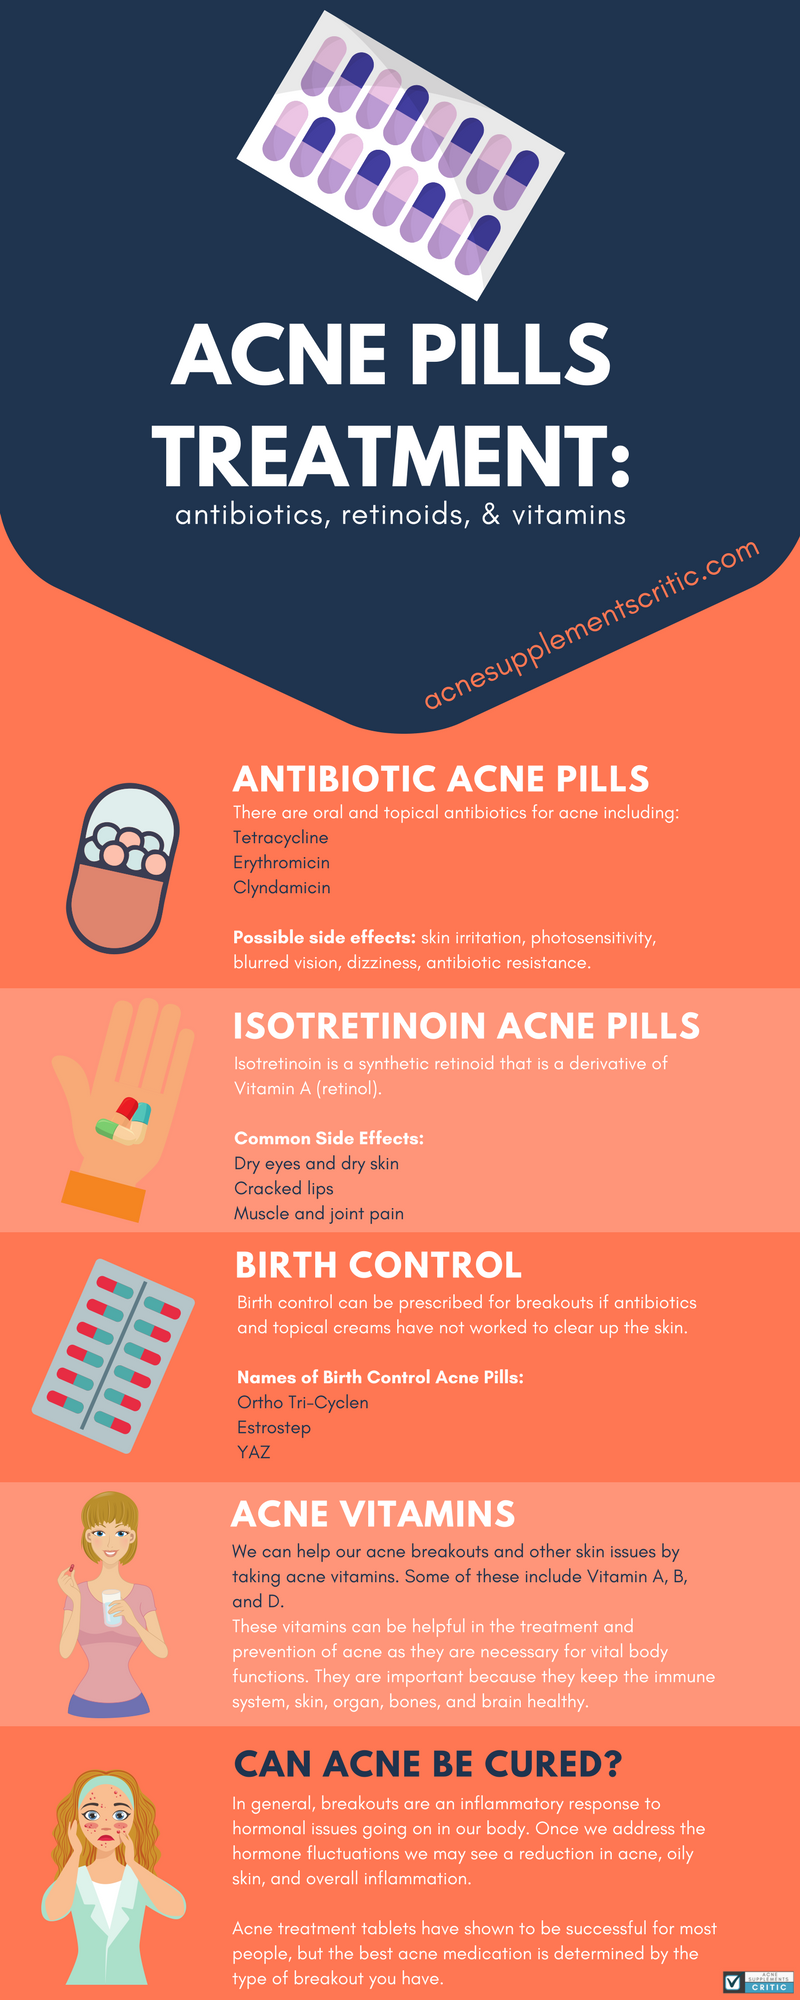 Acne Pills Treatment: Antibiotics, Retinoids, & Vitamins